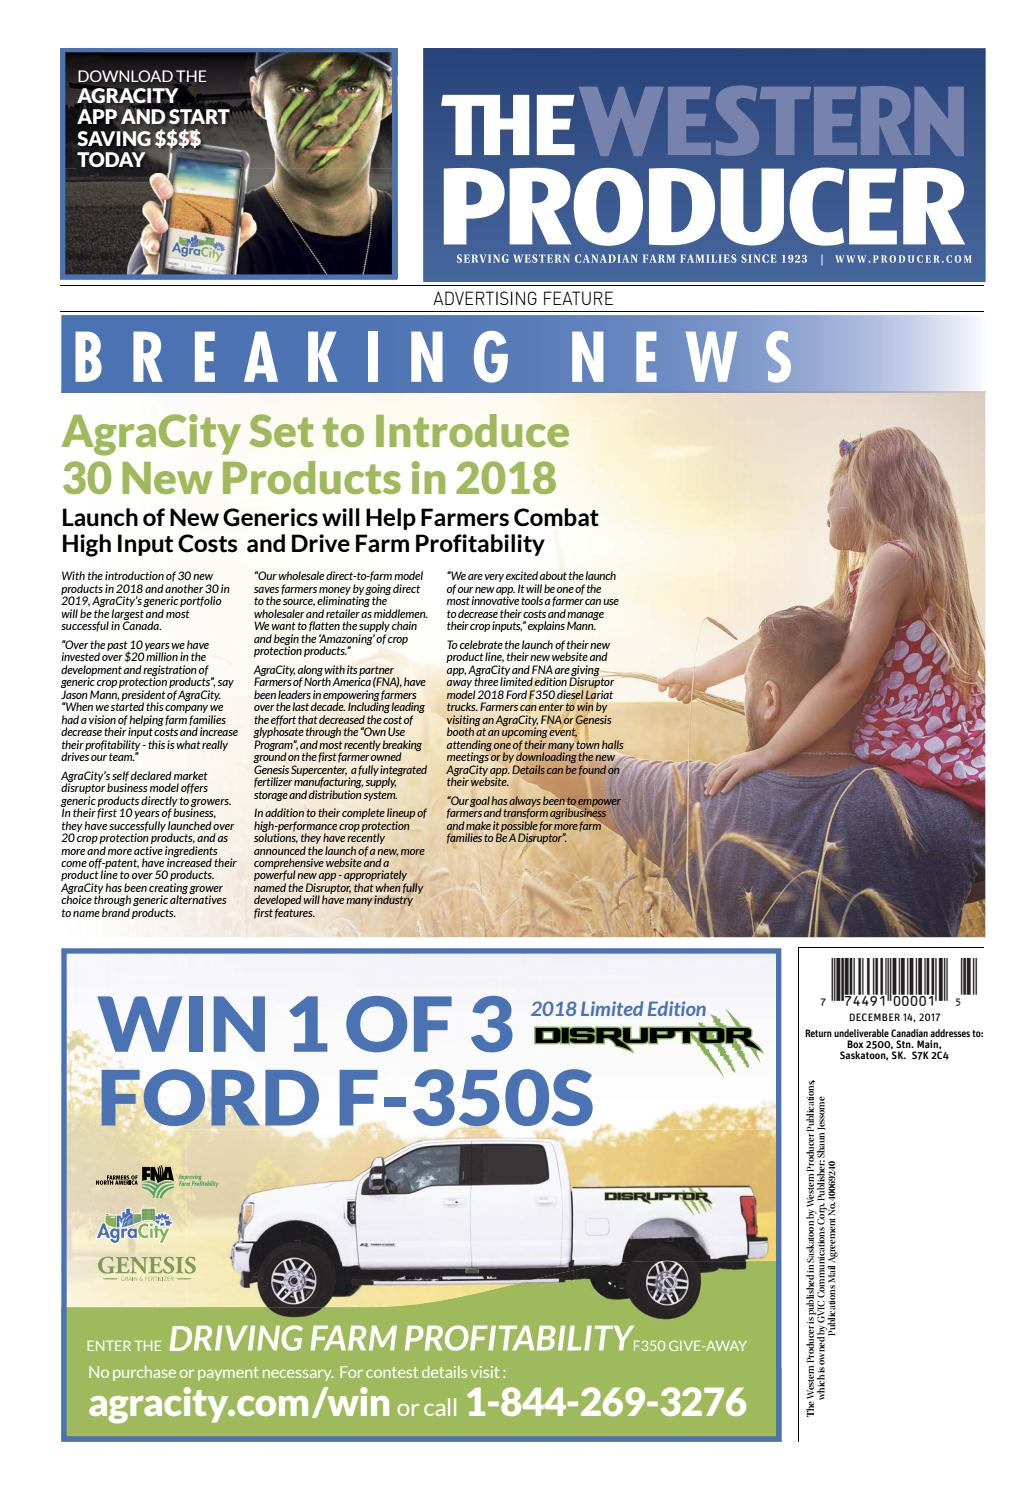 The western producer december 14, 2017 by The Western